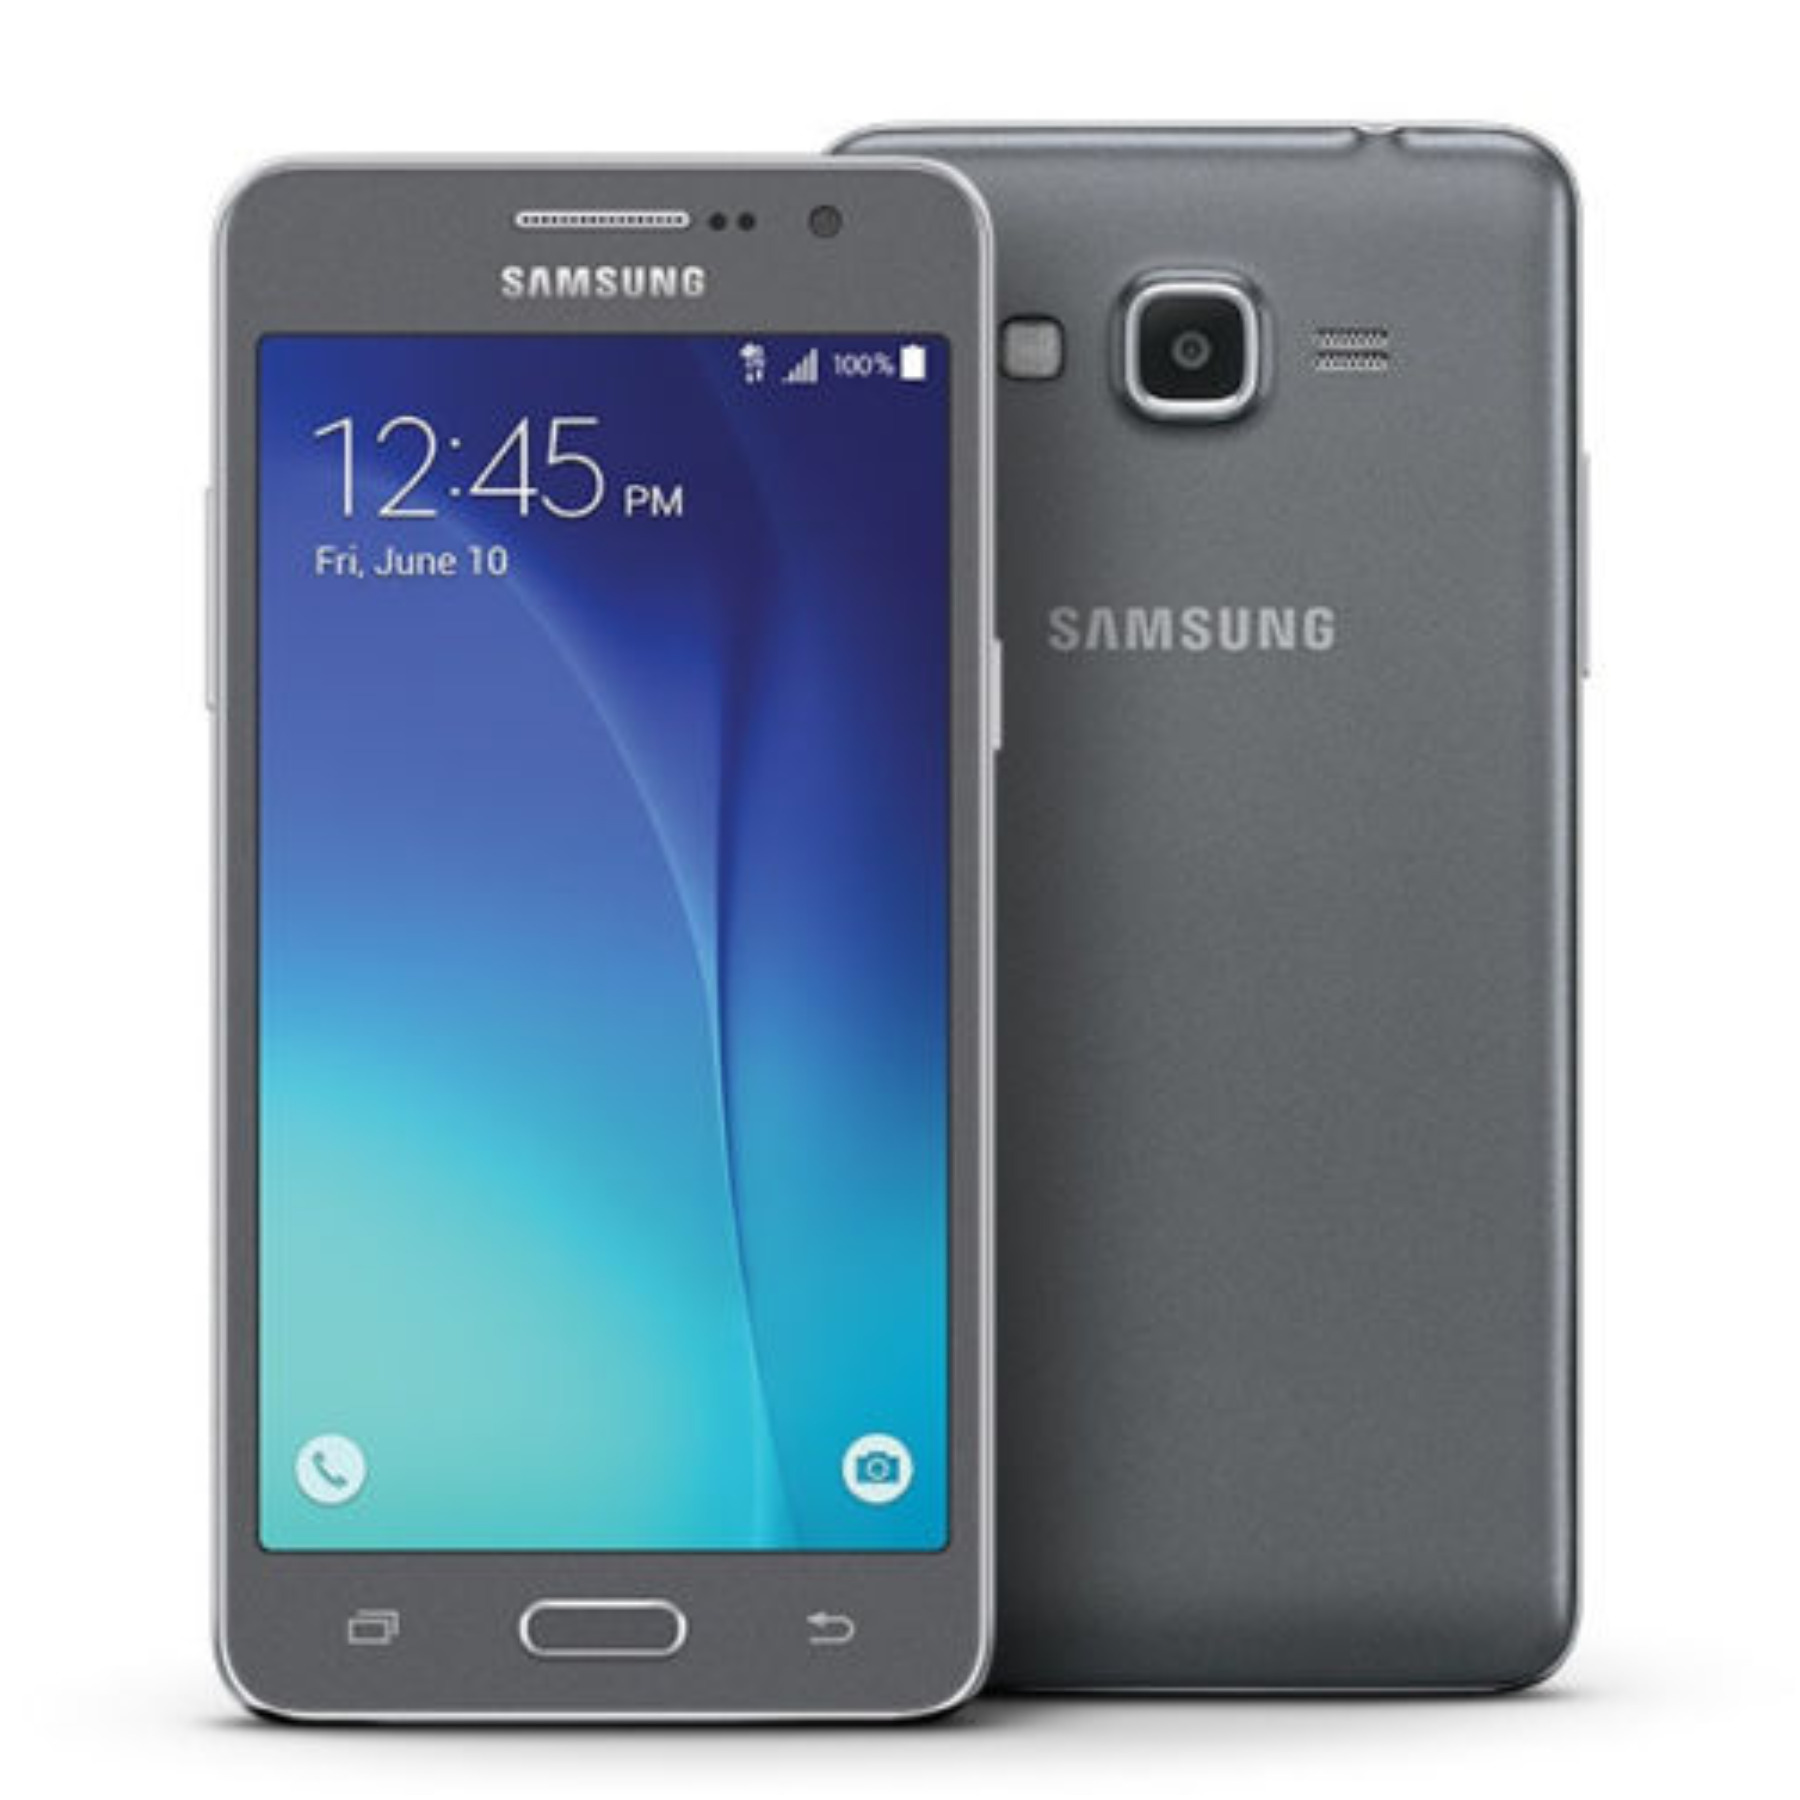 Download COMBINATION file SAMSUNG Galaxy Grand Prime SM-G530T build number G530TUVU2API1